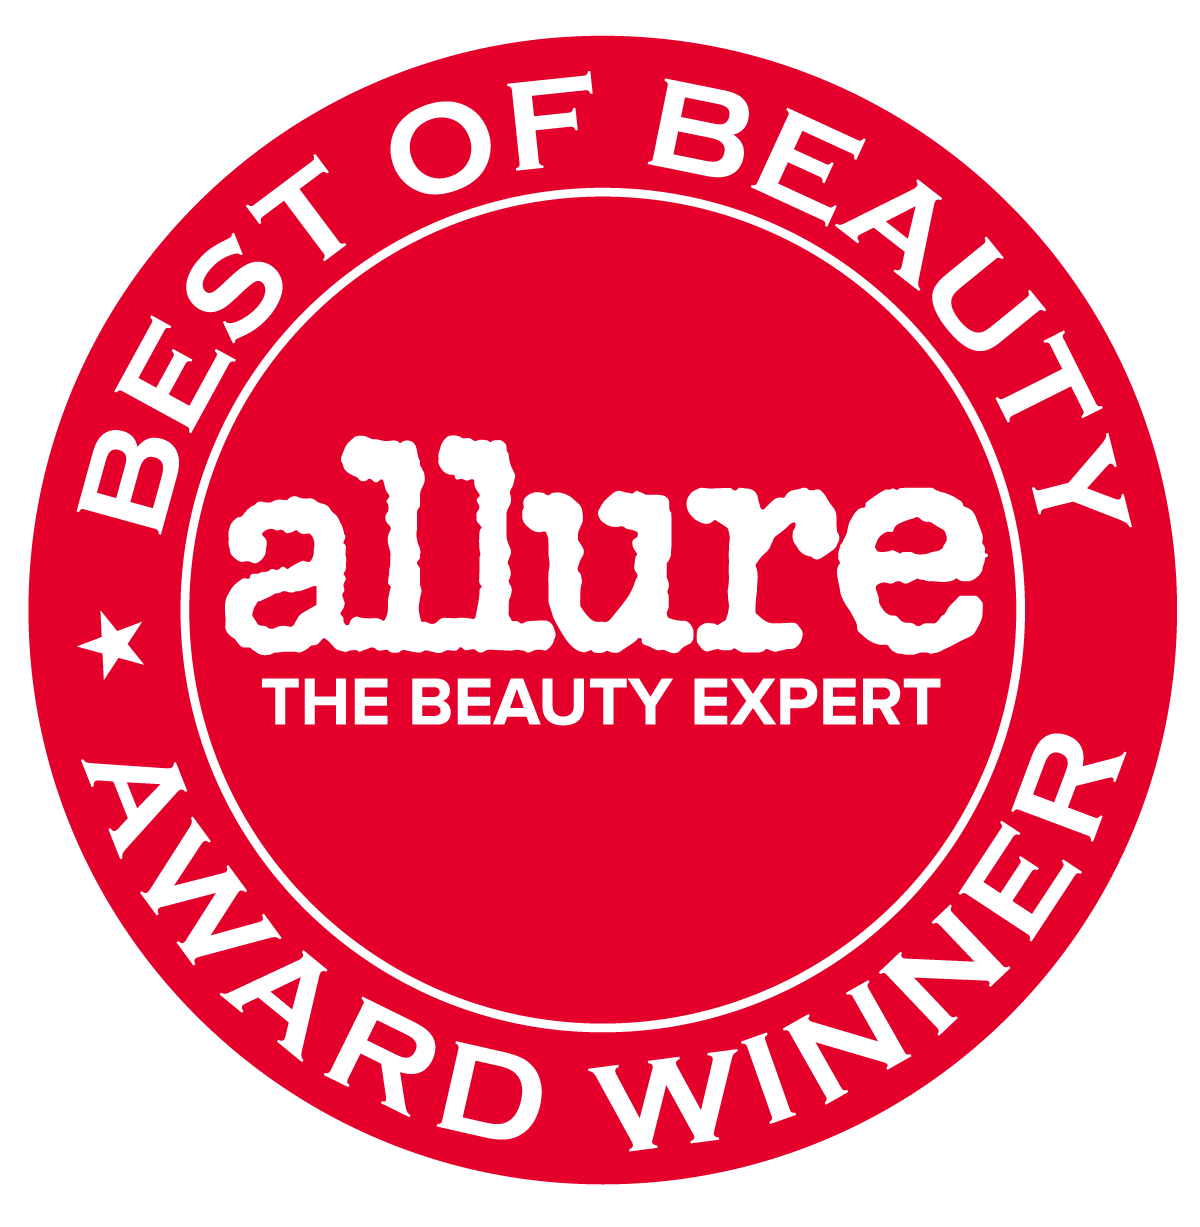 Allure Beauty Expert - Best of Beauty 2016